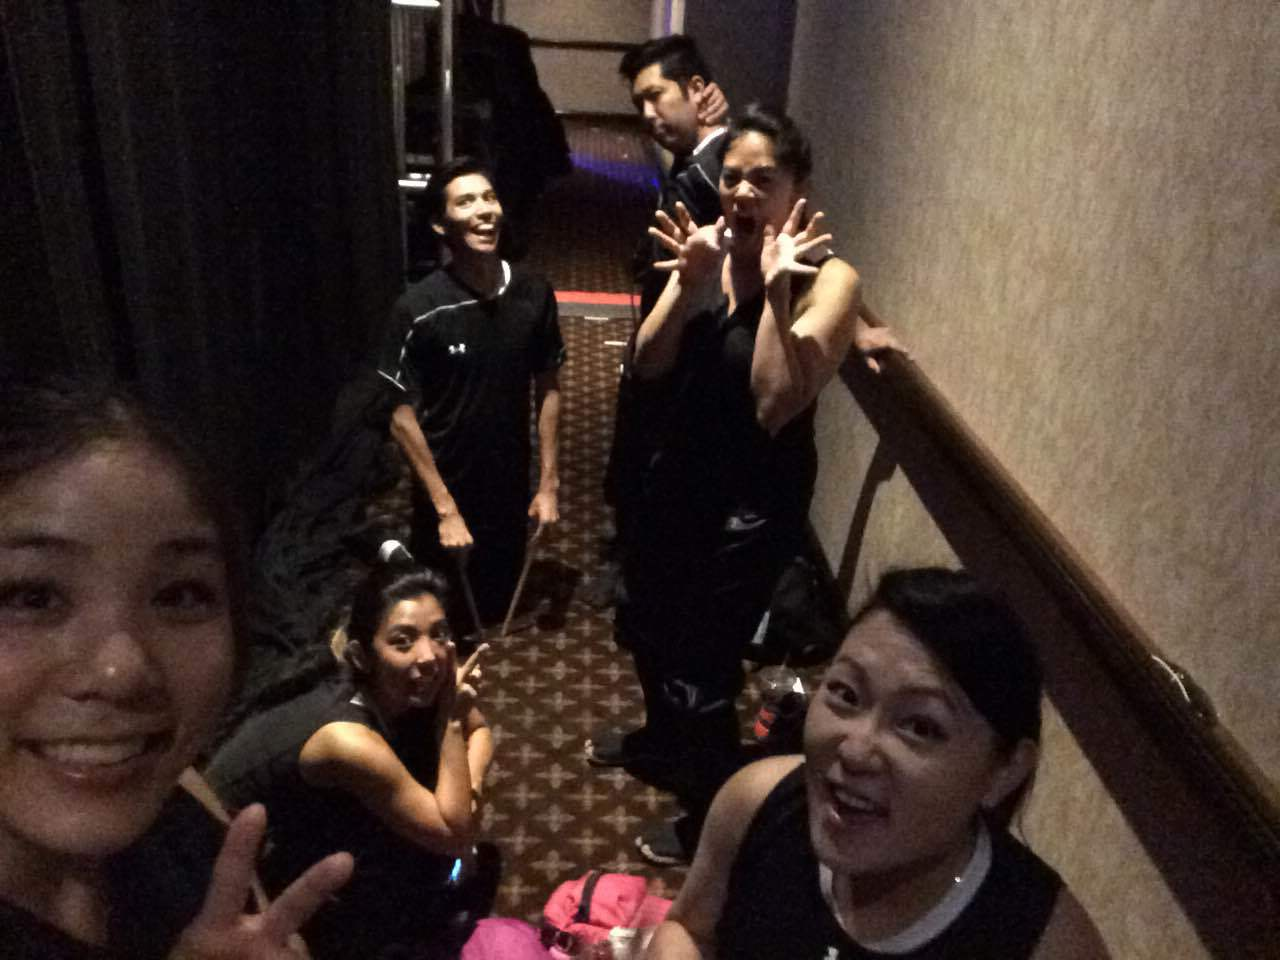 The cast backstage. What's a normal photo?